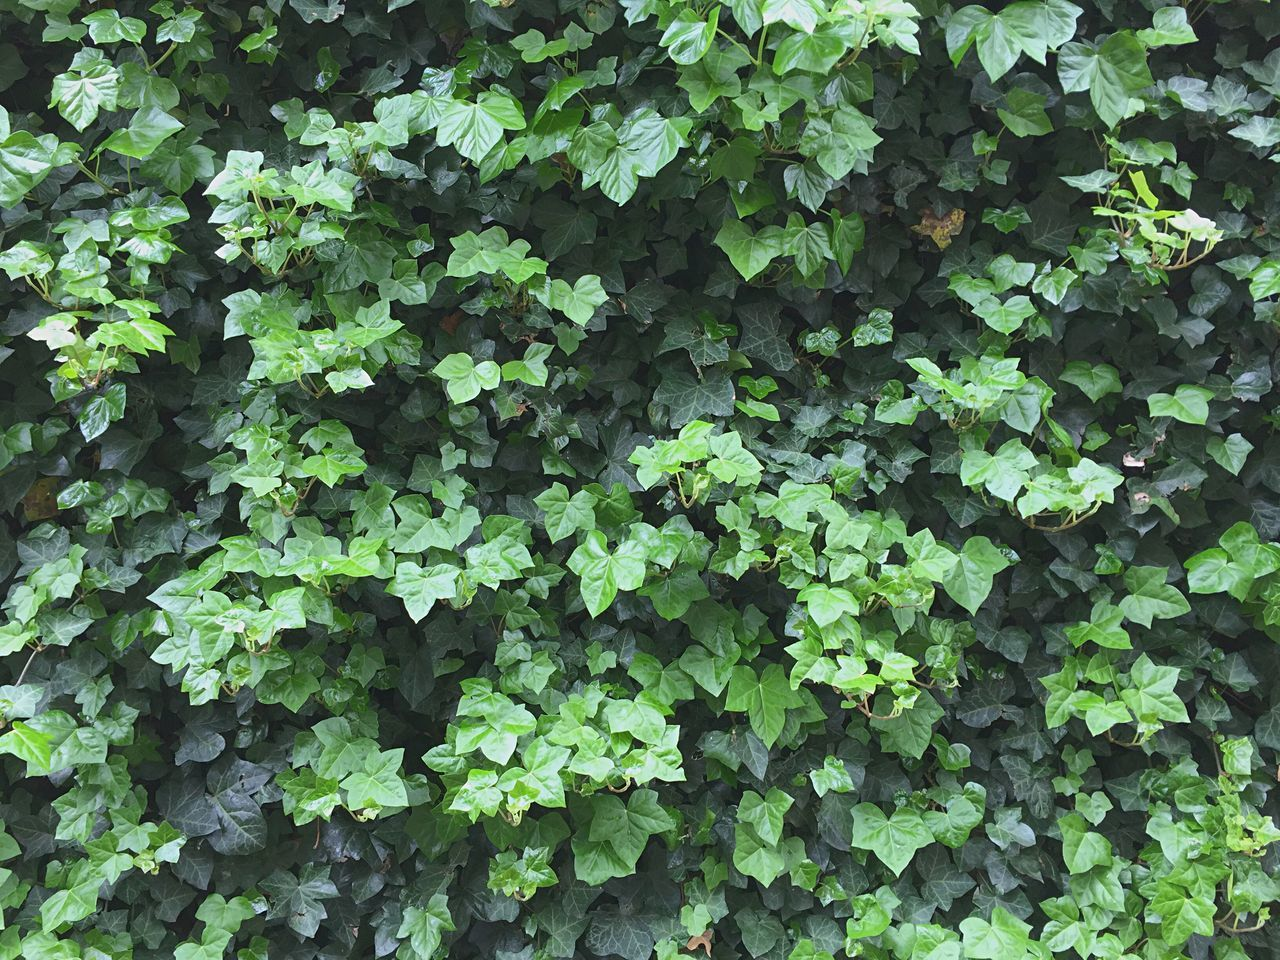 plant, growth, leaf, green color, day, nature, full frame, outdoors, backgrounds, no people, ivy, fragility, beauty in nature, close-up, freshness